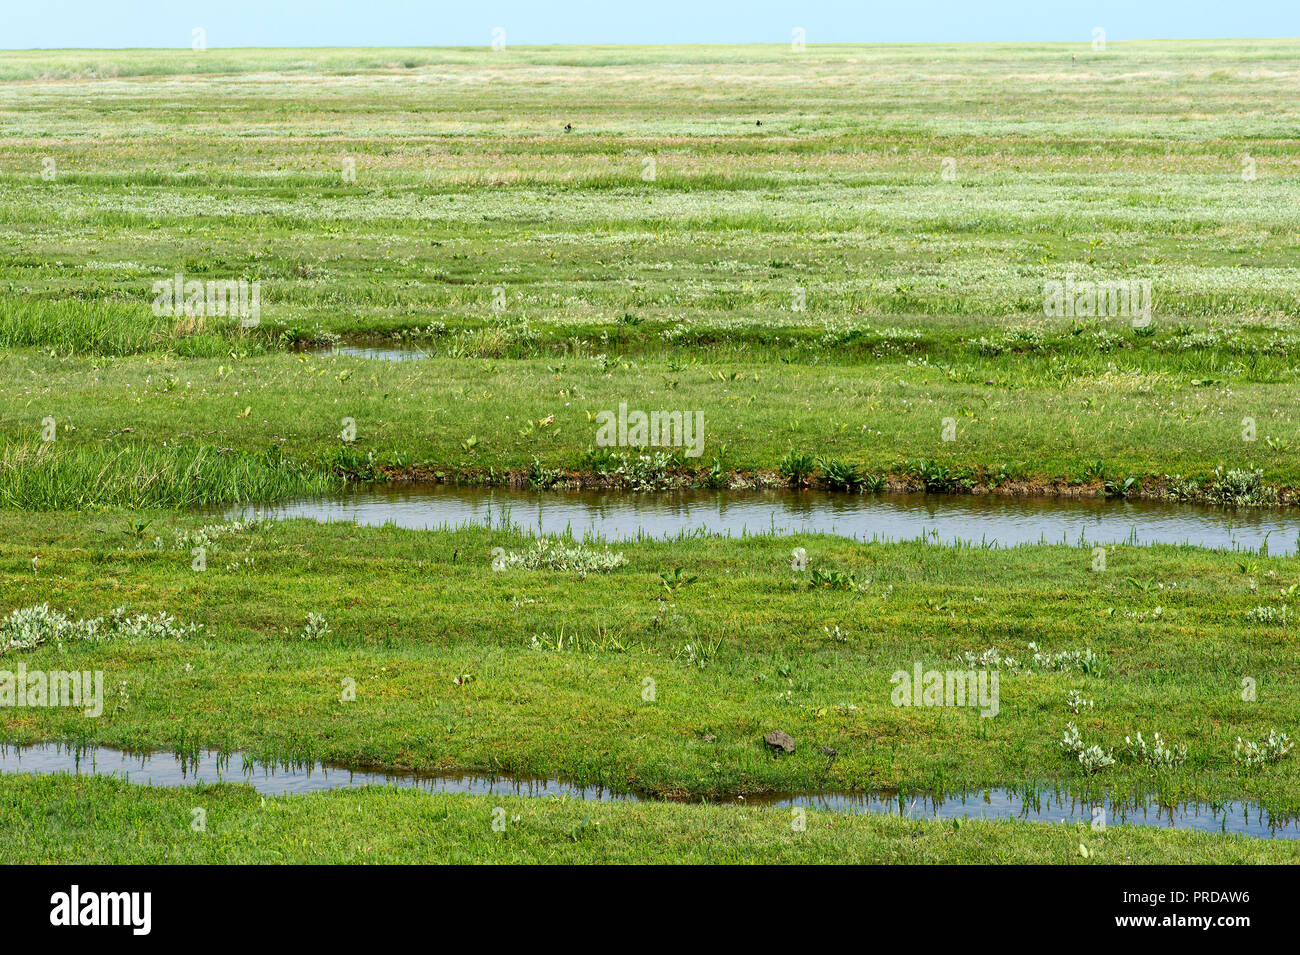 Salt marshes in the transition between sea and land, North Sea coast, Schleswig-Holstein, Germany - Stock Image